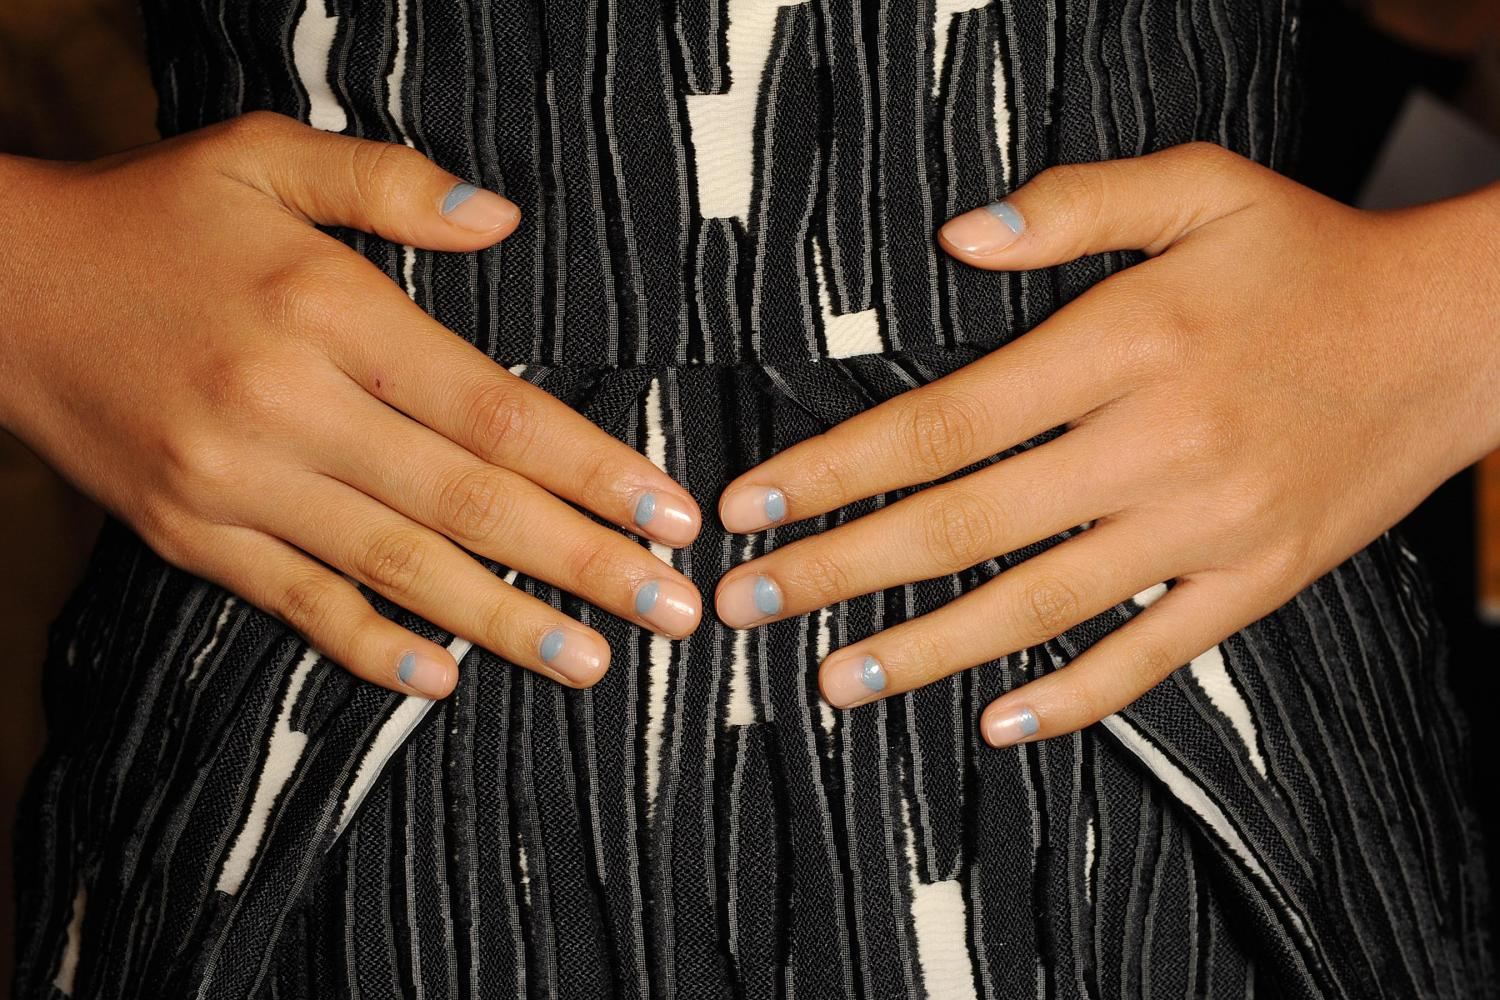 NYFW: Nails by butter LONDON on the Lela Rose Runway